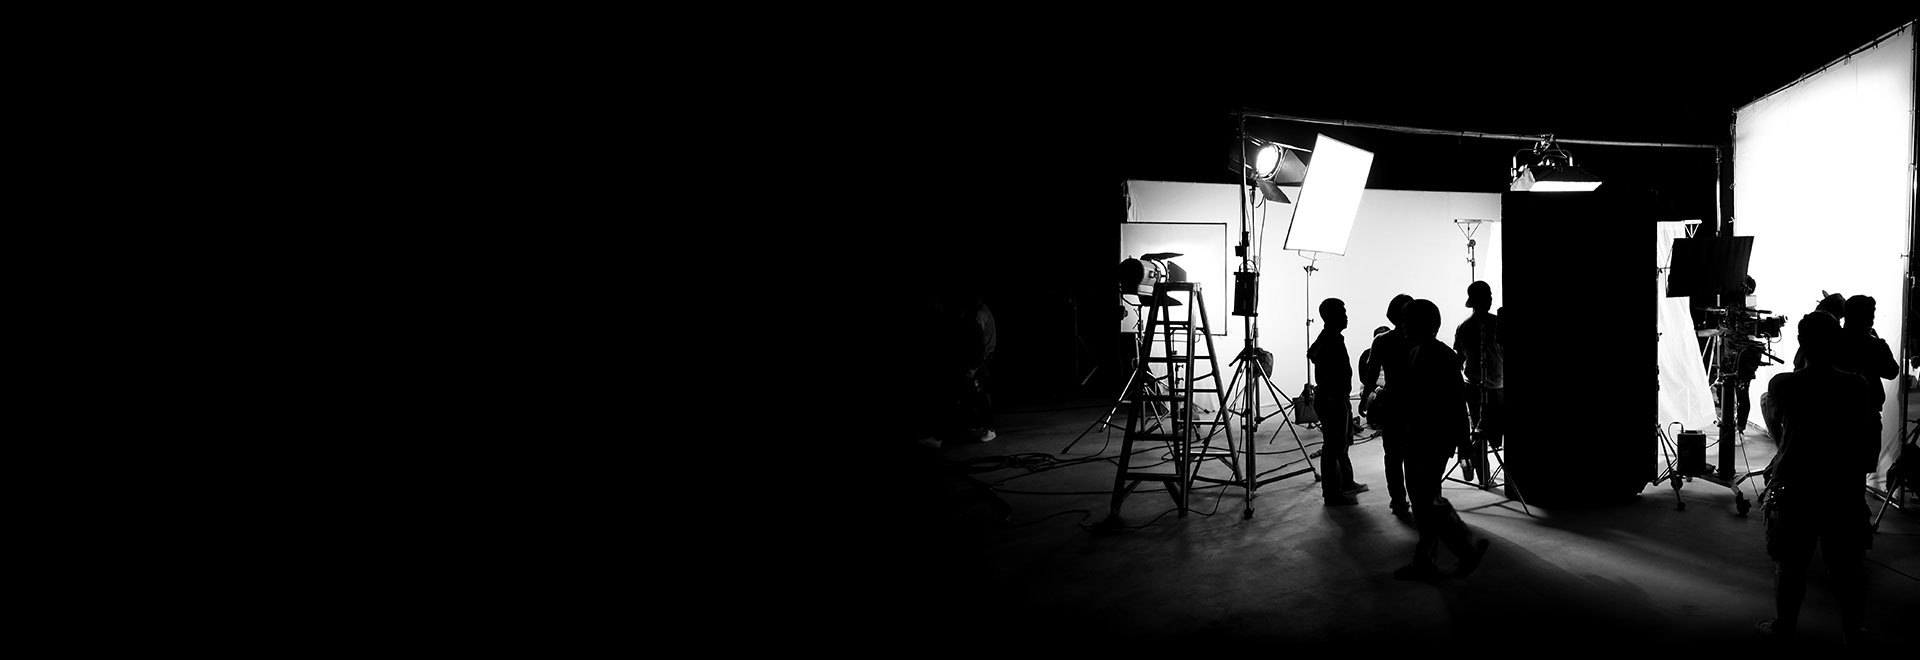 Content Creation and Film Production company - London